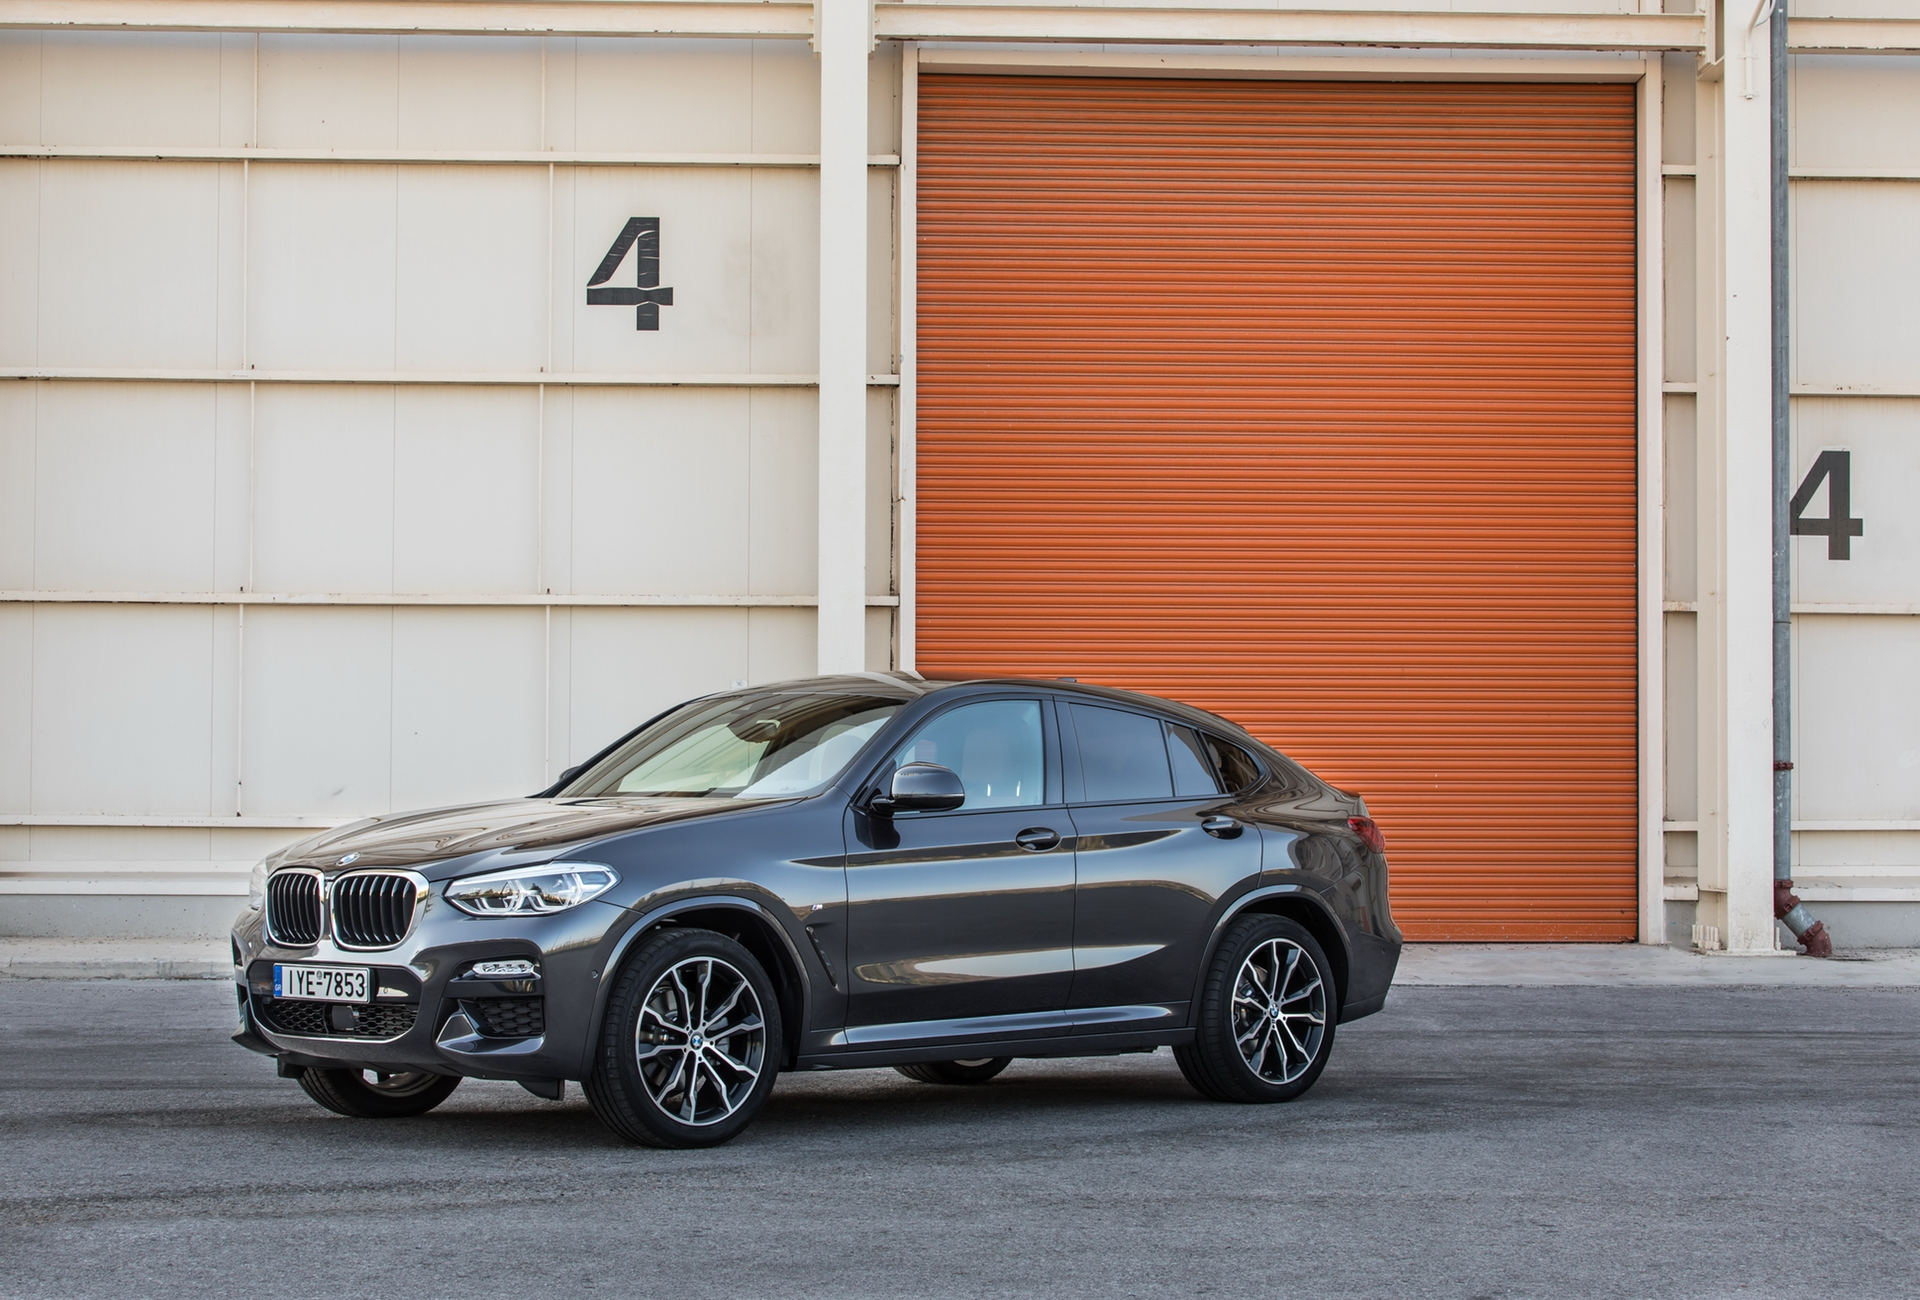 BMW_X4_greek_presskit_0028